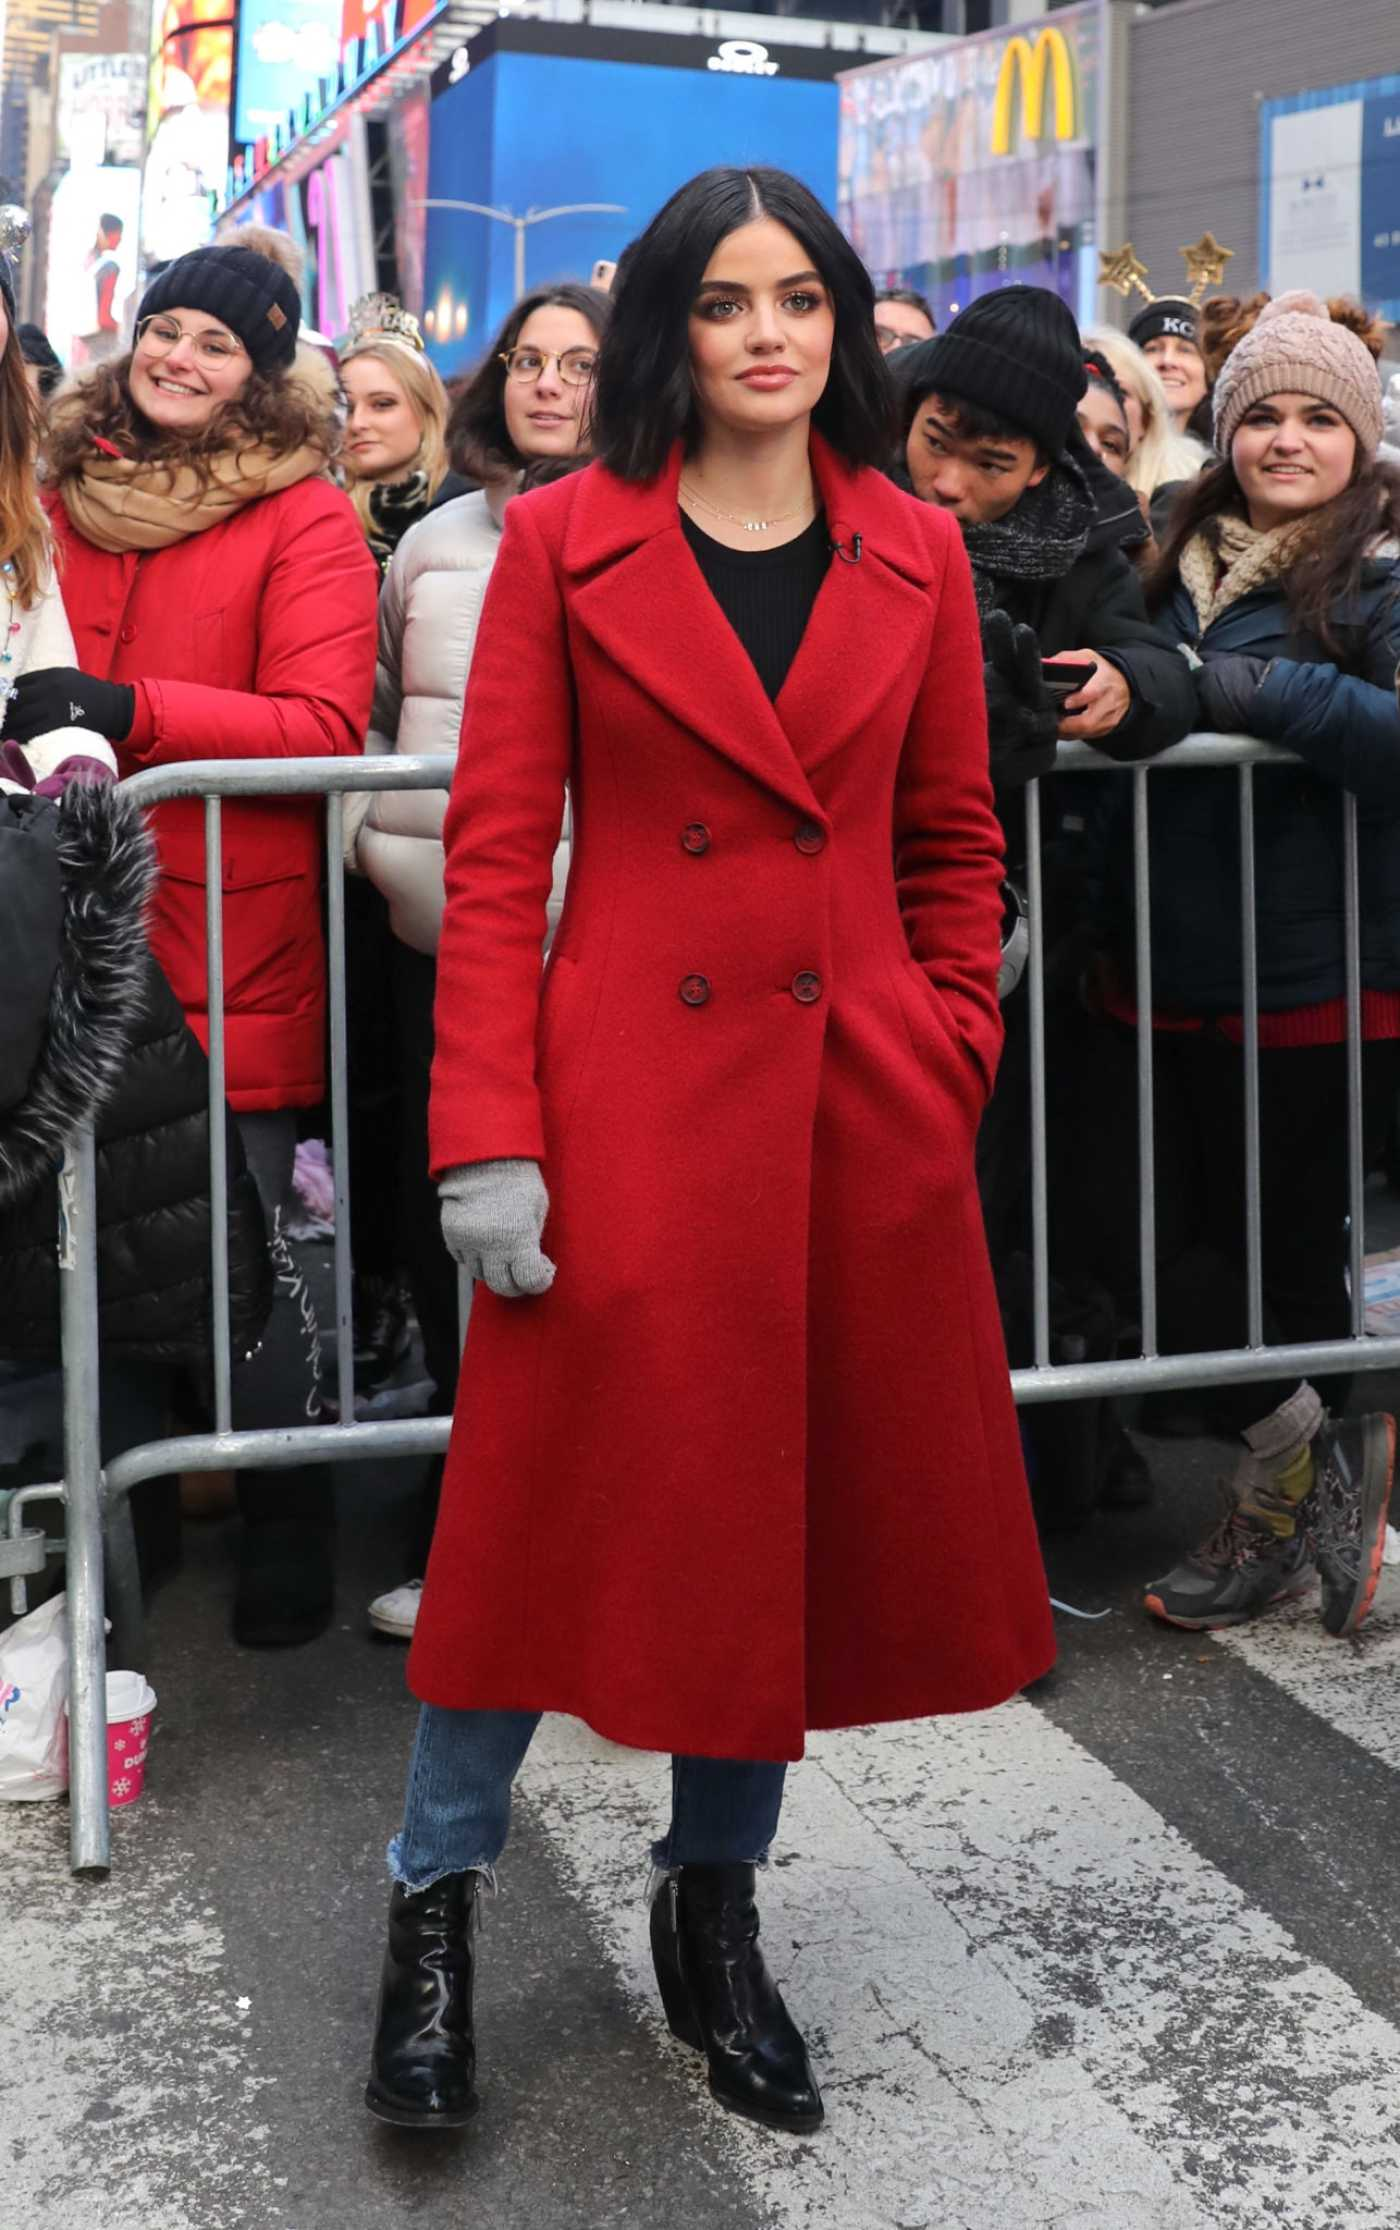 Lucy Hale in a Red Coat Attends 2020 Dick Clark's New Year's Rockin' Eve in New York 12/31/2019